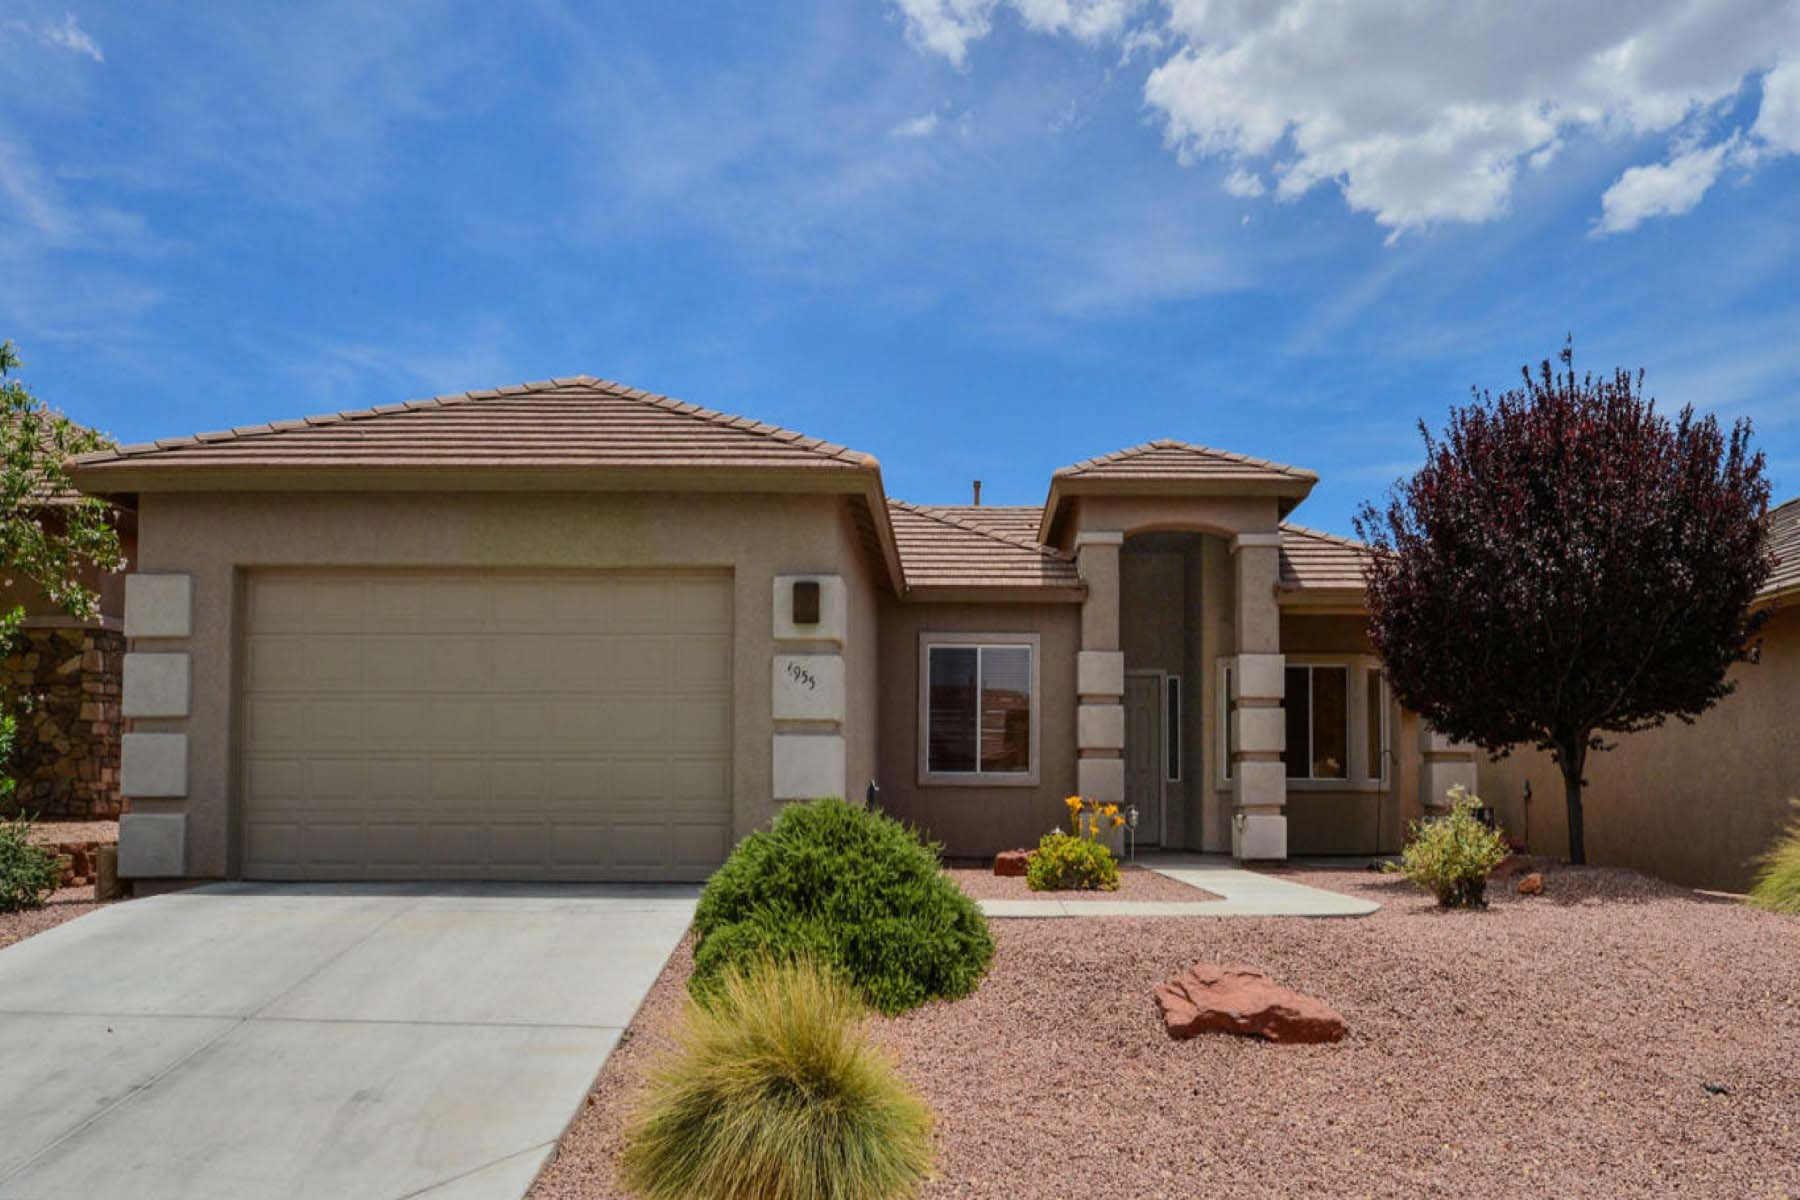 Single Family Home for Sale at Lovely sunny and desirable three bedroom split floor plan home with a den. 4955 E Somerset Drive Cornville, Arizona 86325 United States